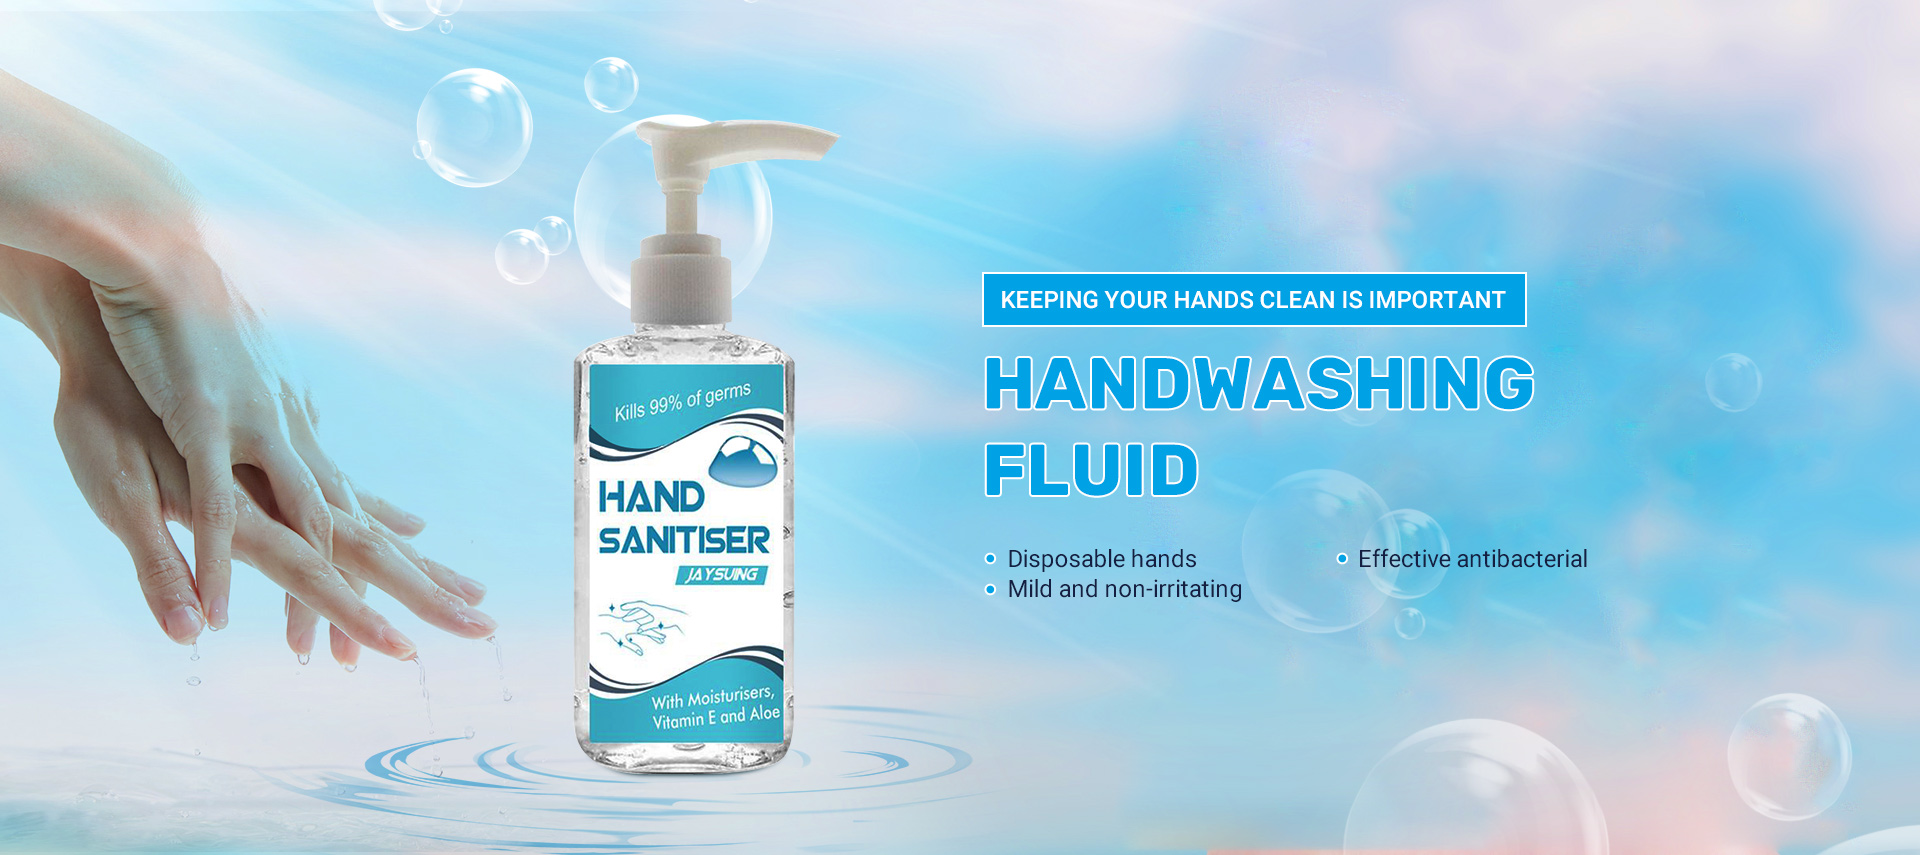 Handwashing Fluid